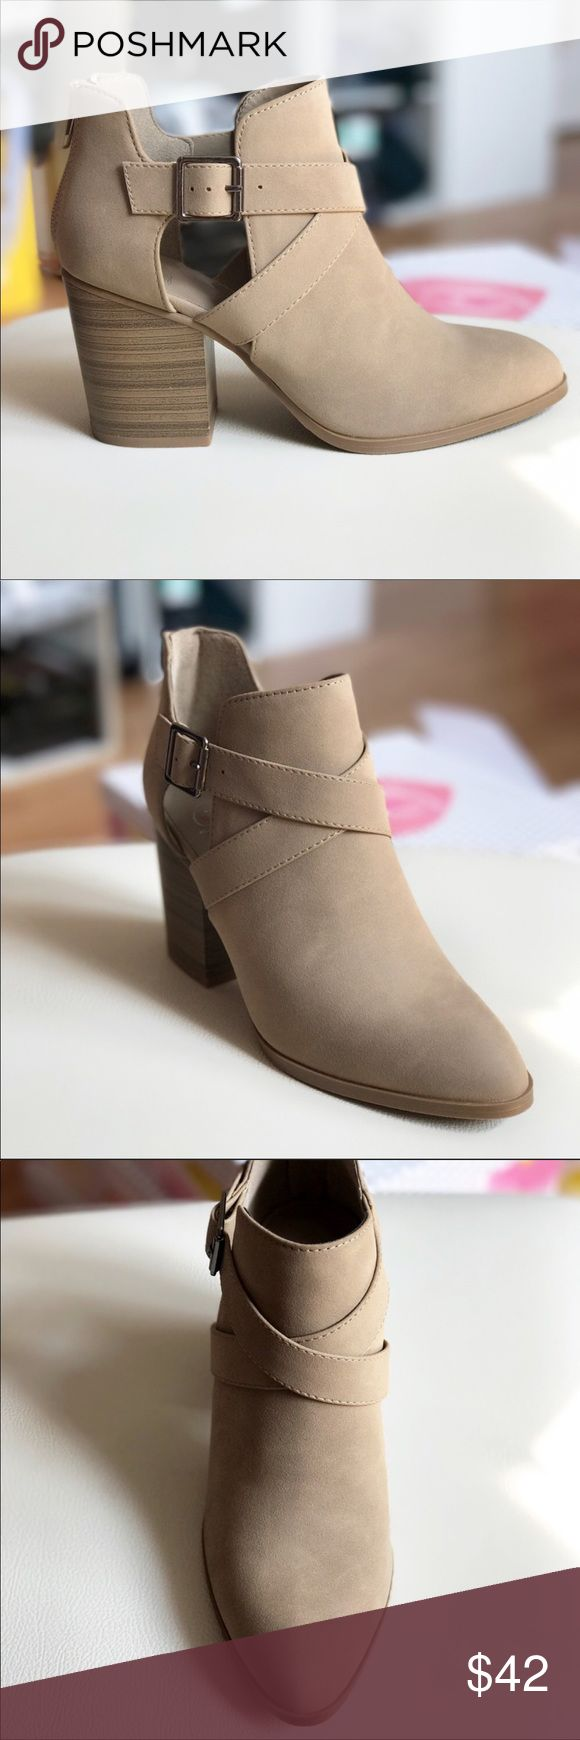 """📍LAST PAIR 📍Taupe Buckle Bootie These gorgeous booties are a MUST HAVE for Fall. Get them now!!!! 3"""" tall and fits true to size. Zipper heel and adjustable buckle to make tighter to looser. Sizes 6.5 last pair. Comes with shoe box.  📍ALL IMAGES ARE COPYRIGHTED TO VALMARIE BOUTIQUE LLC AND WILL NOT BE ALLOWED TO USE WITHOUT PRIOR PERMISSION.📍fits true to size. ValMarie Shoes Ankle Boots & Booties"""